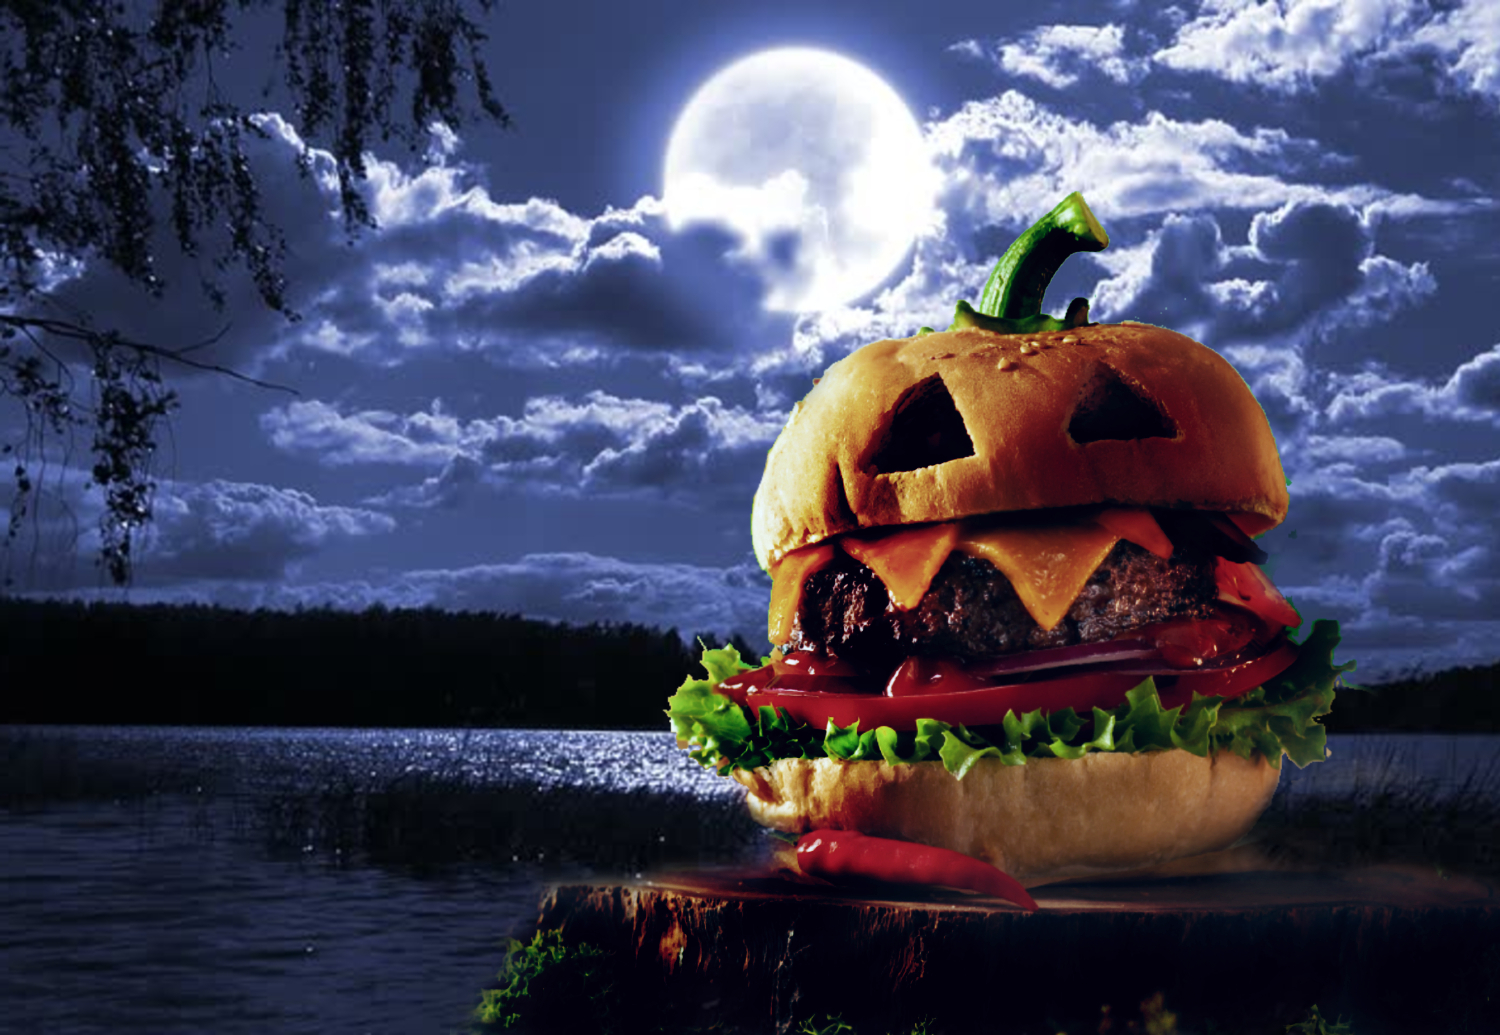 There's a food lover's Halloween drive-through coming to a spooky lake near L.A.